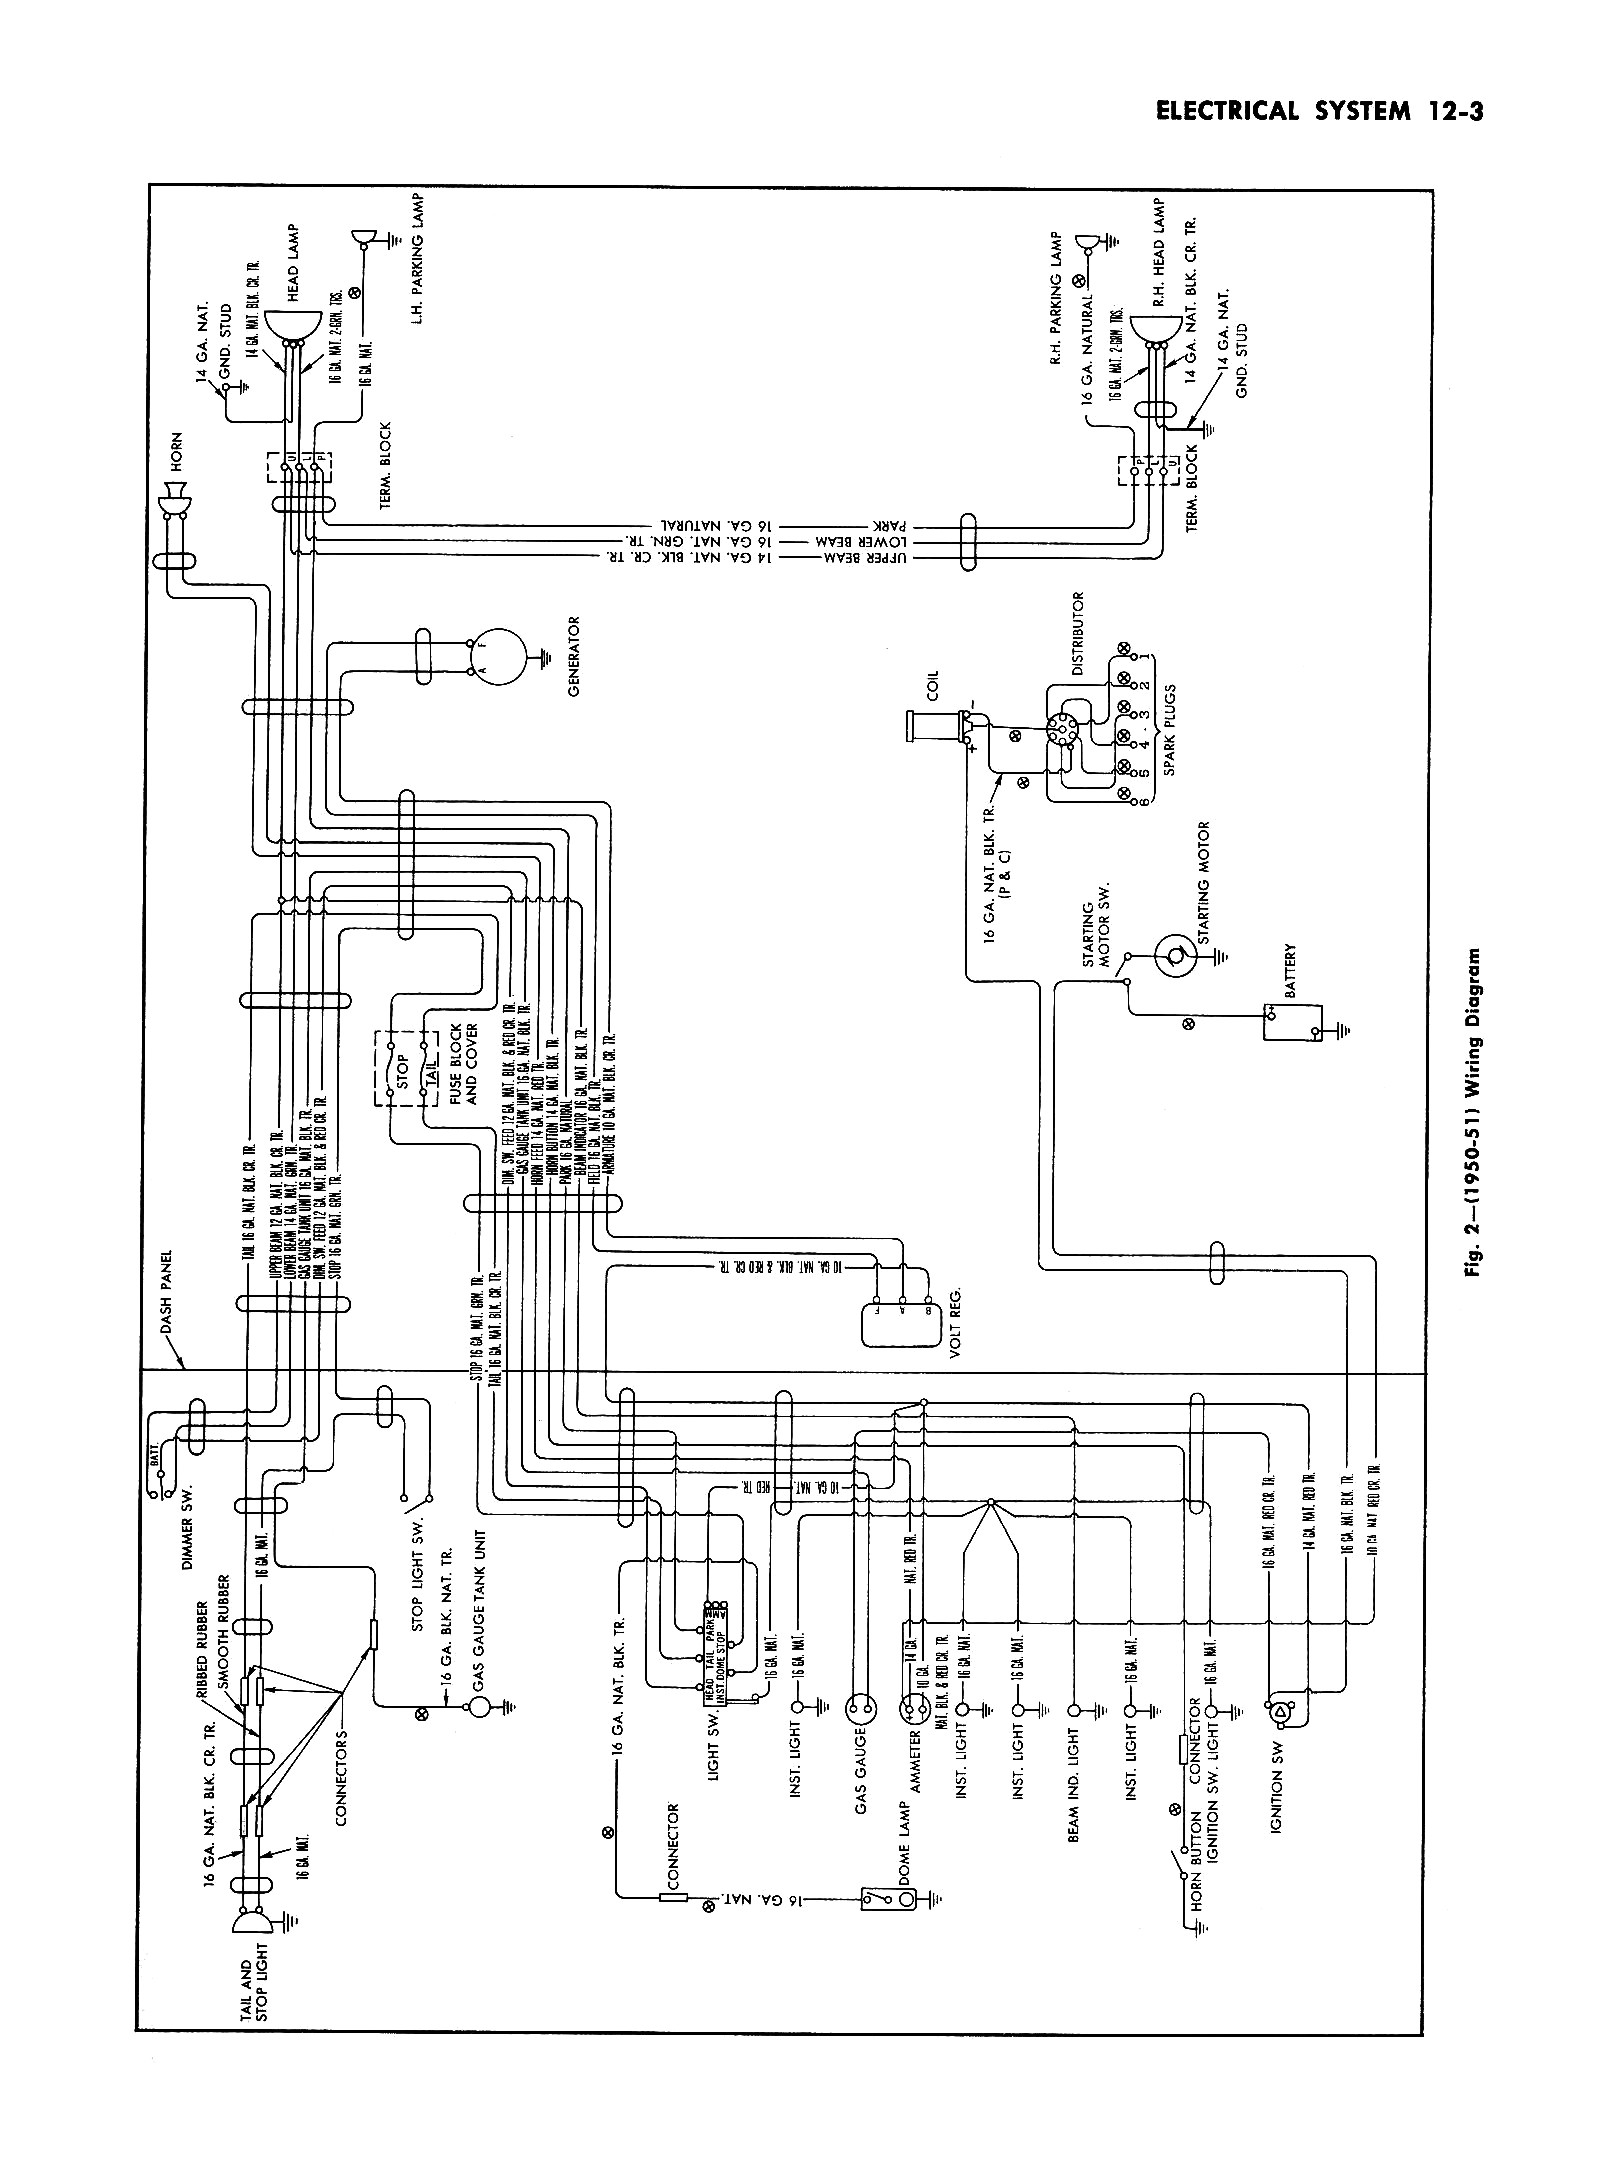 1959 chevy apache wiring diagram